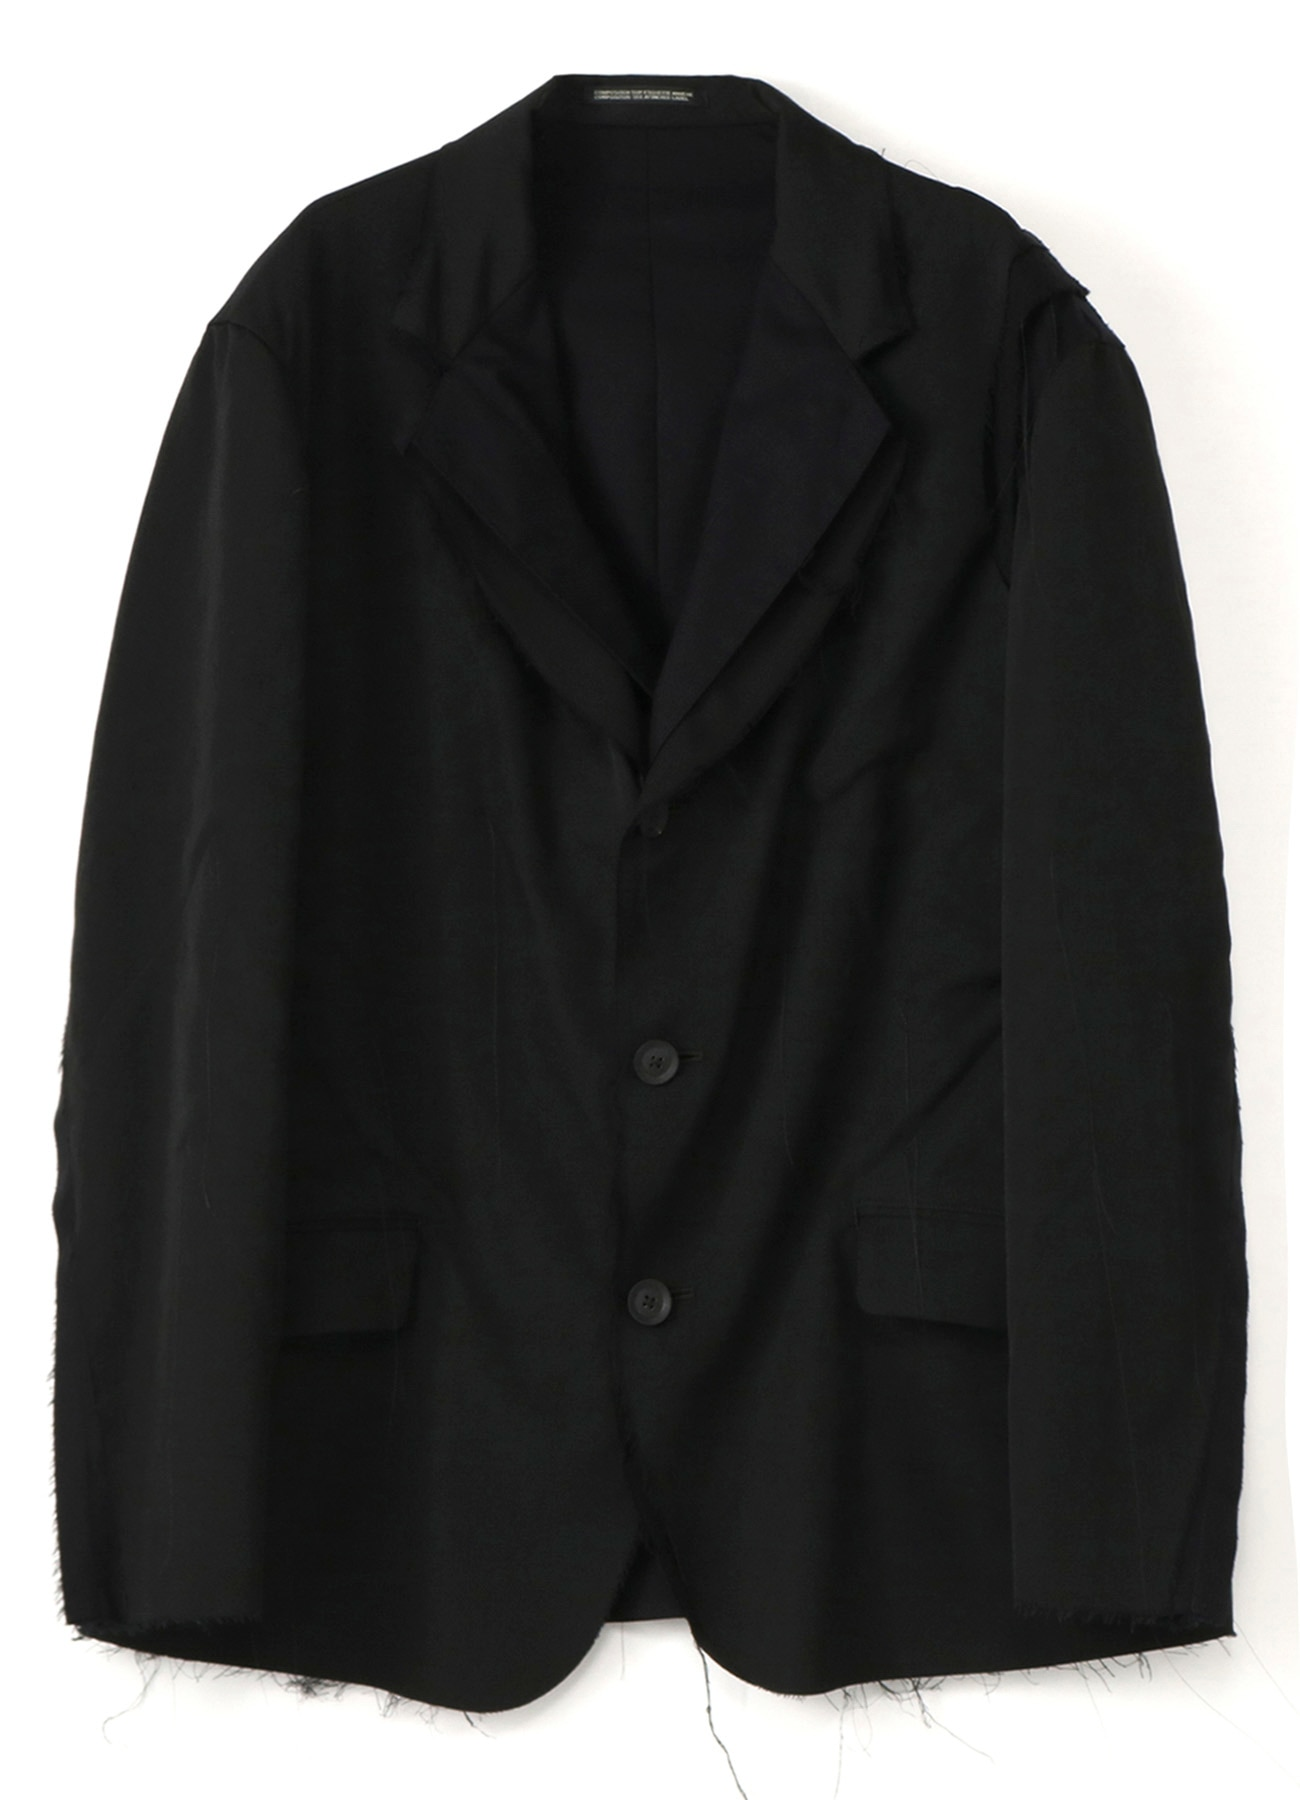 WOOL GABARDINE+COTTON CLOTH+VISCOSE 3BUTTON LAYER JACKET